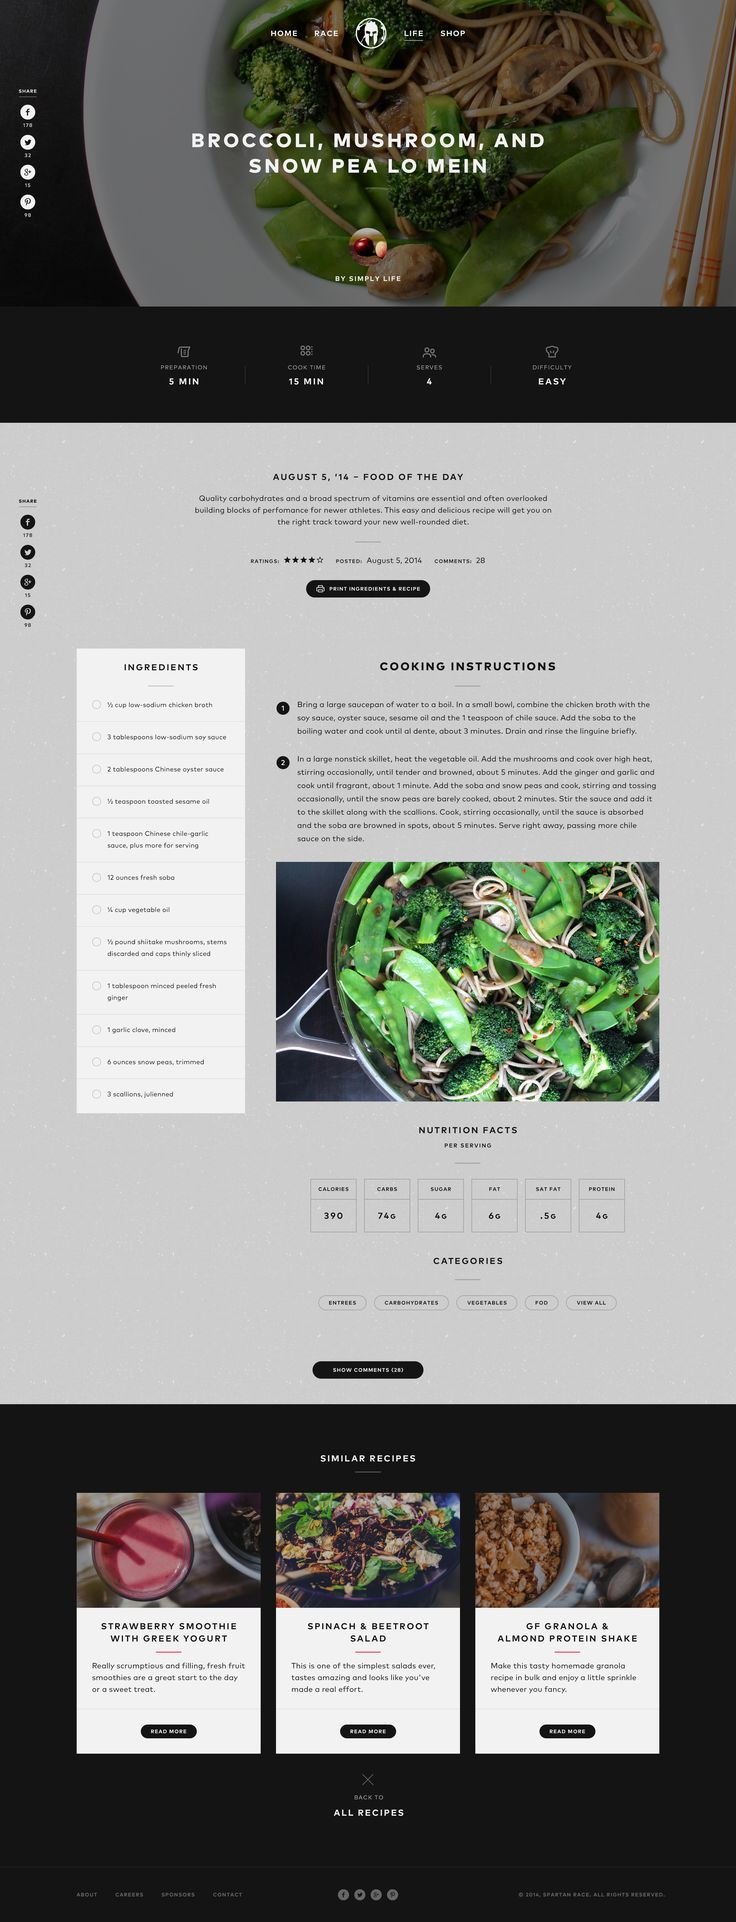 // Hi Friends, look what I just found on #web #design! Make sure to follow us @moirestudiosjkt to see more pins like this   Moire Studios is a thriving website and graphic design studio based in Jakarta, Indonesia.